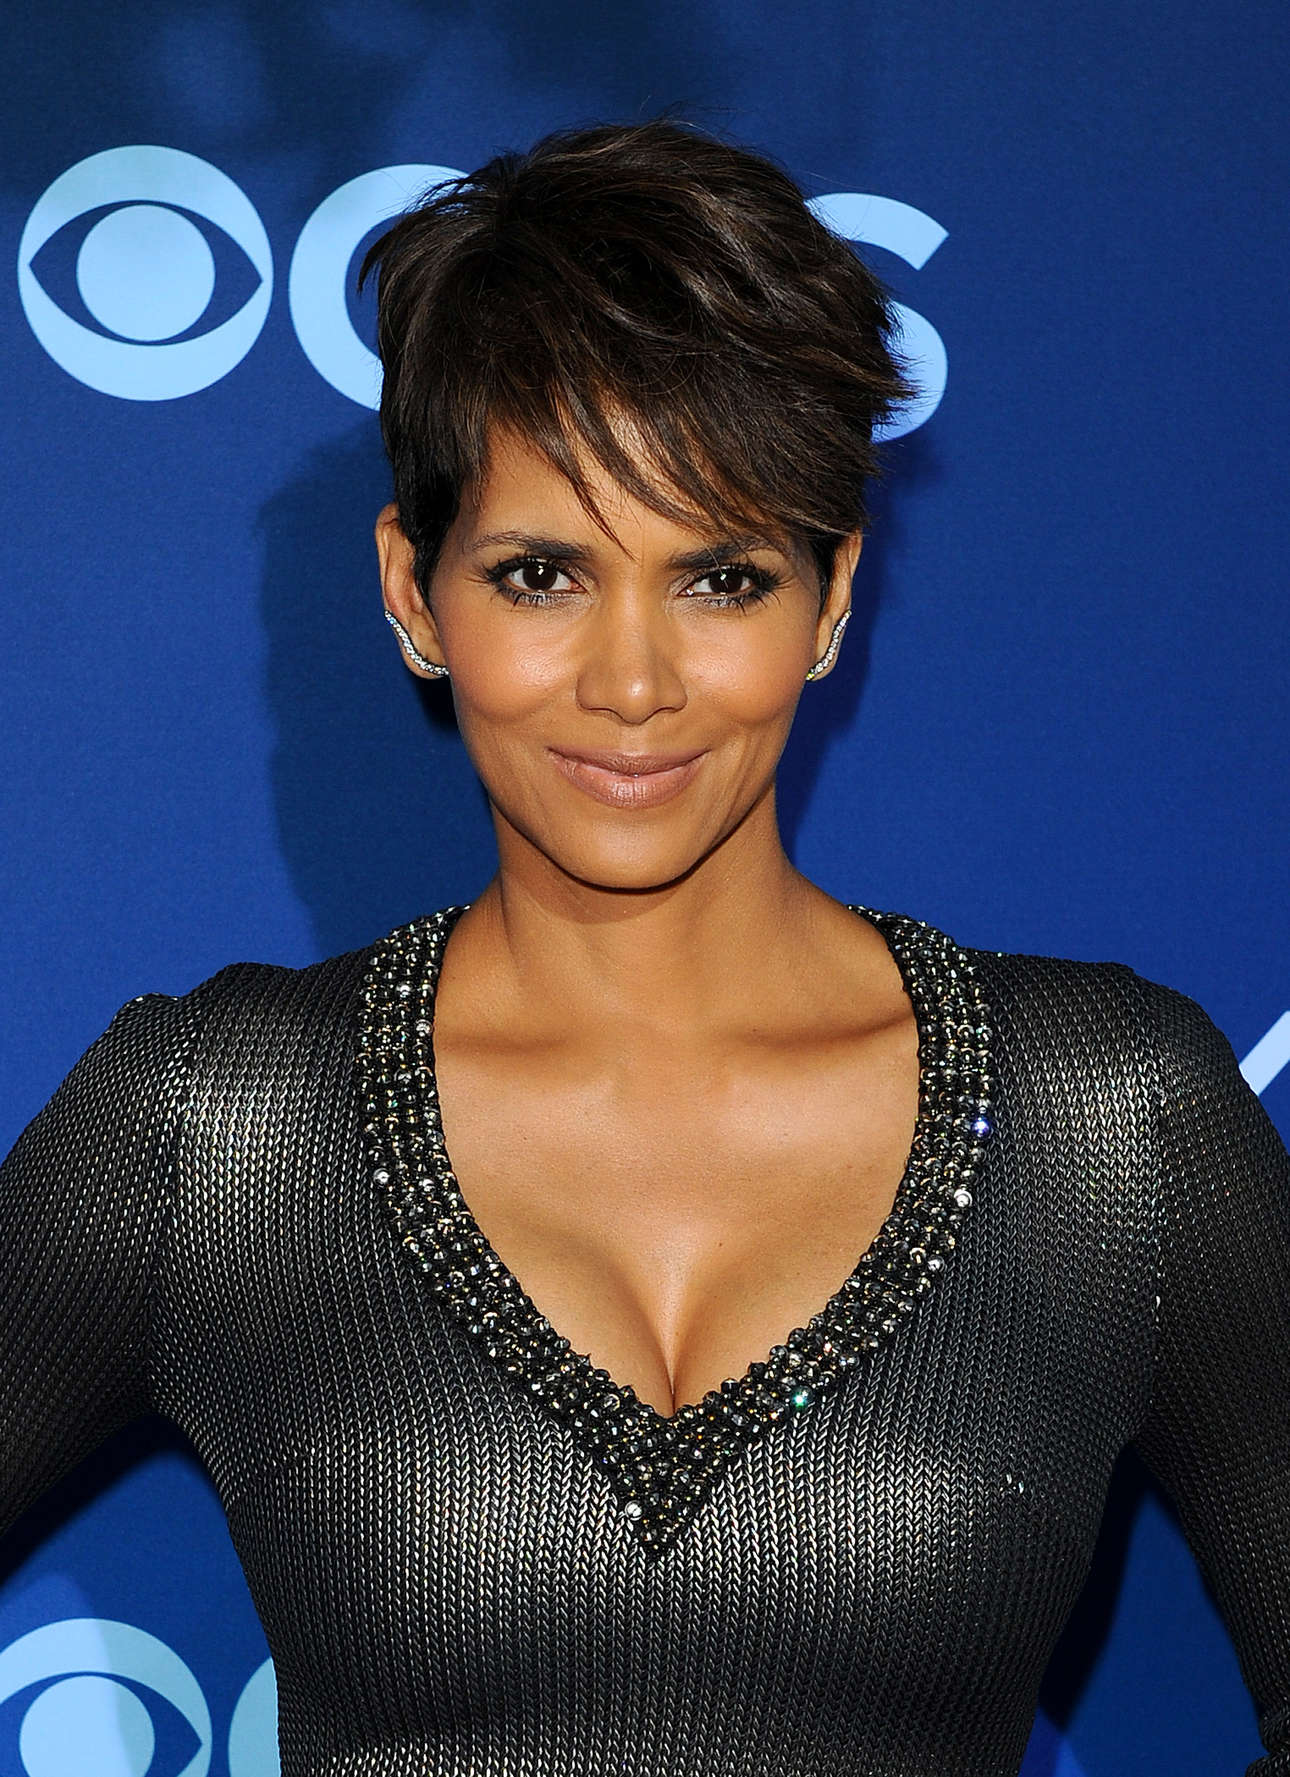 Celebrites Halle Berry nudes (46 photos), Topless, Is a cute, Twitter, see through 2006